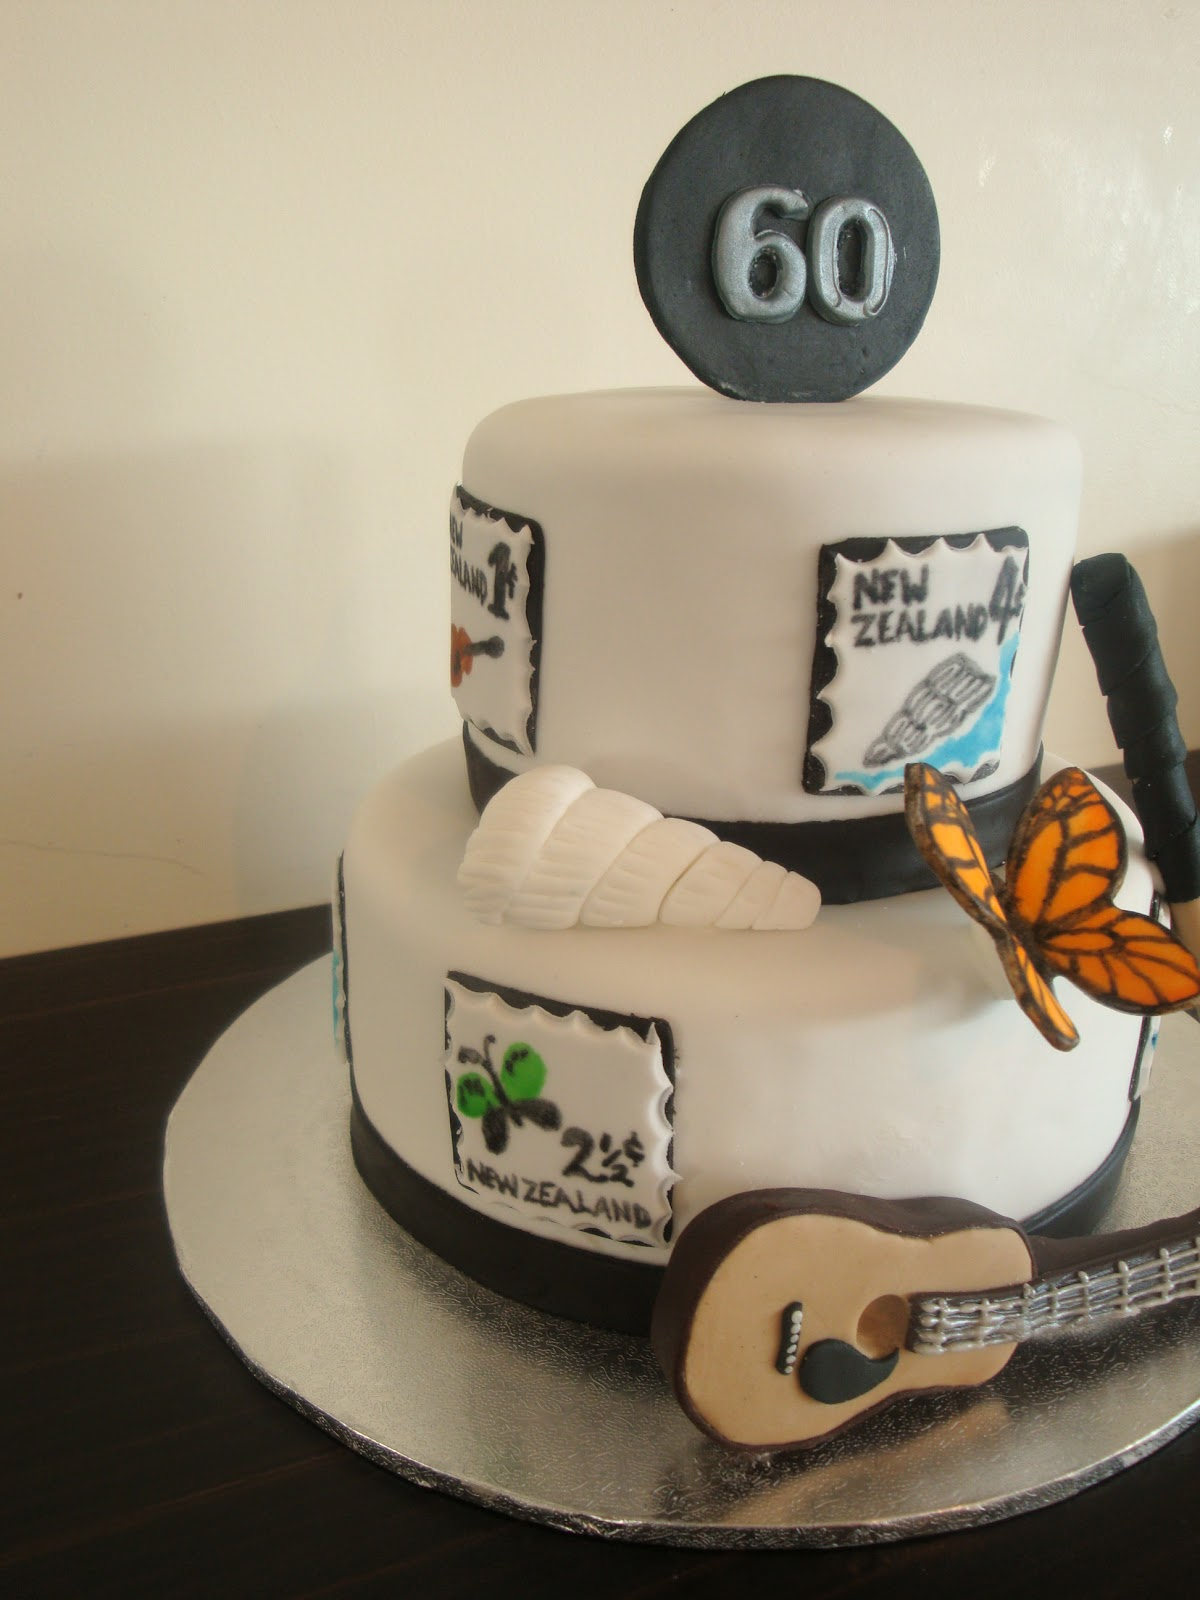 60th Birthday Cake This Was A Special For Friends Father Of Mine There Are Specific Elements In That Represent Him